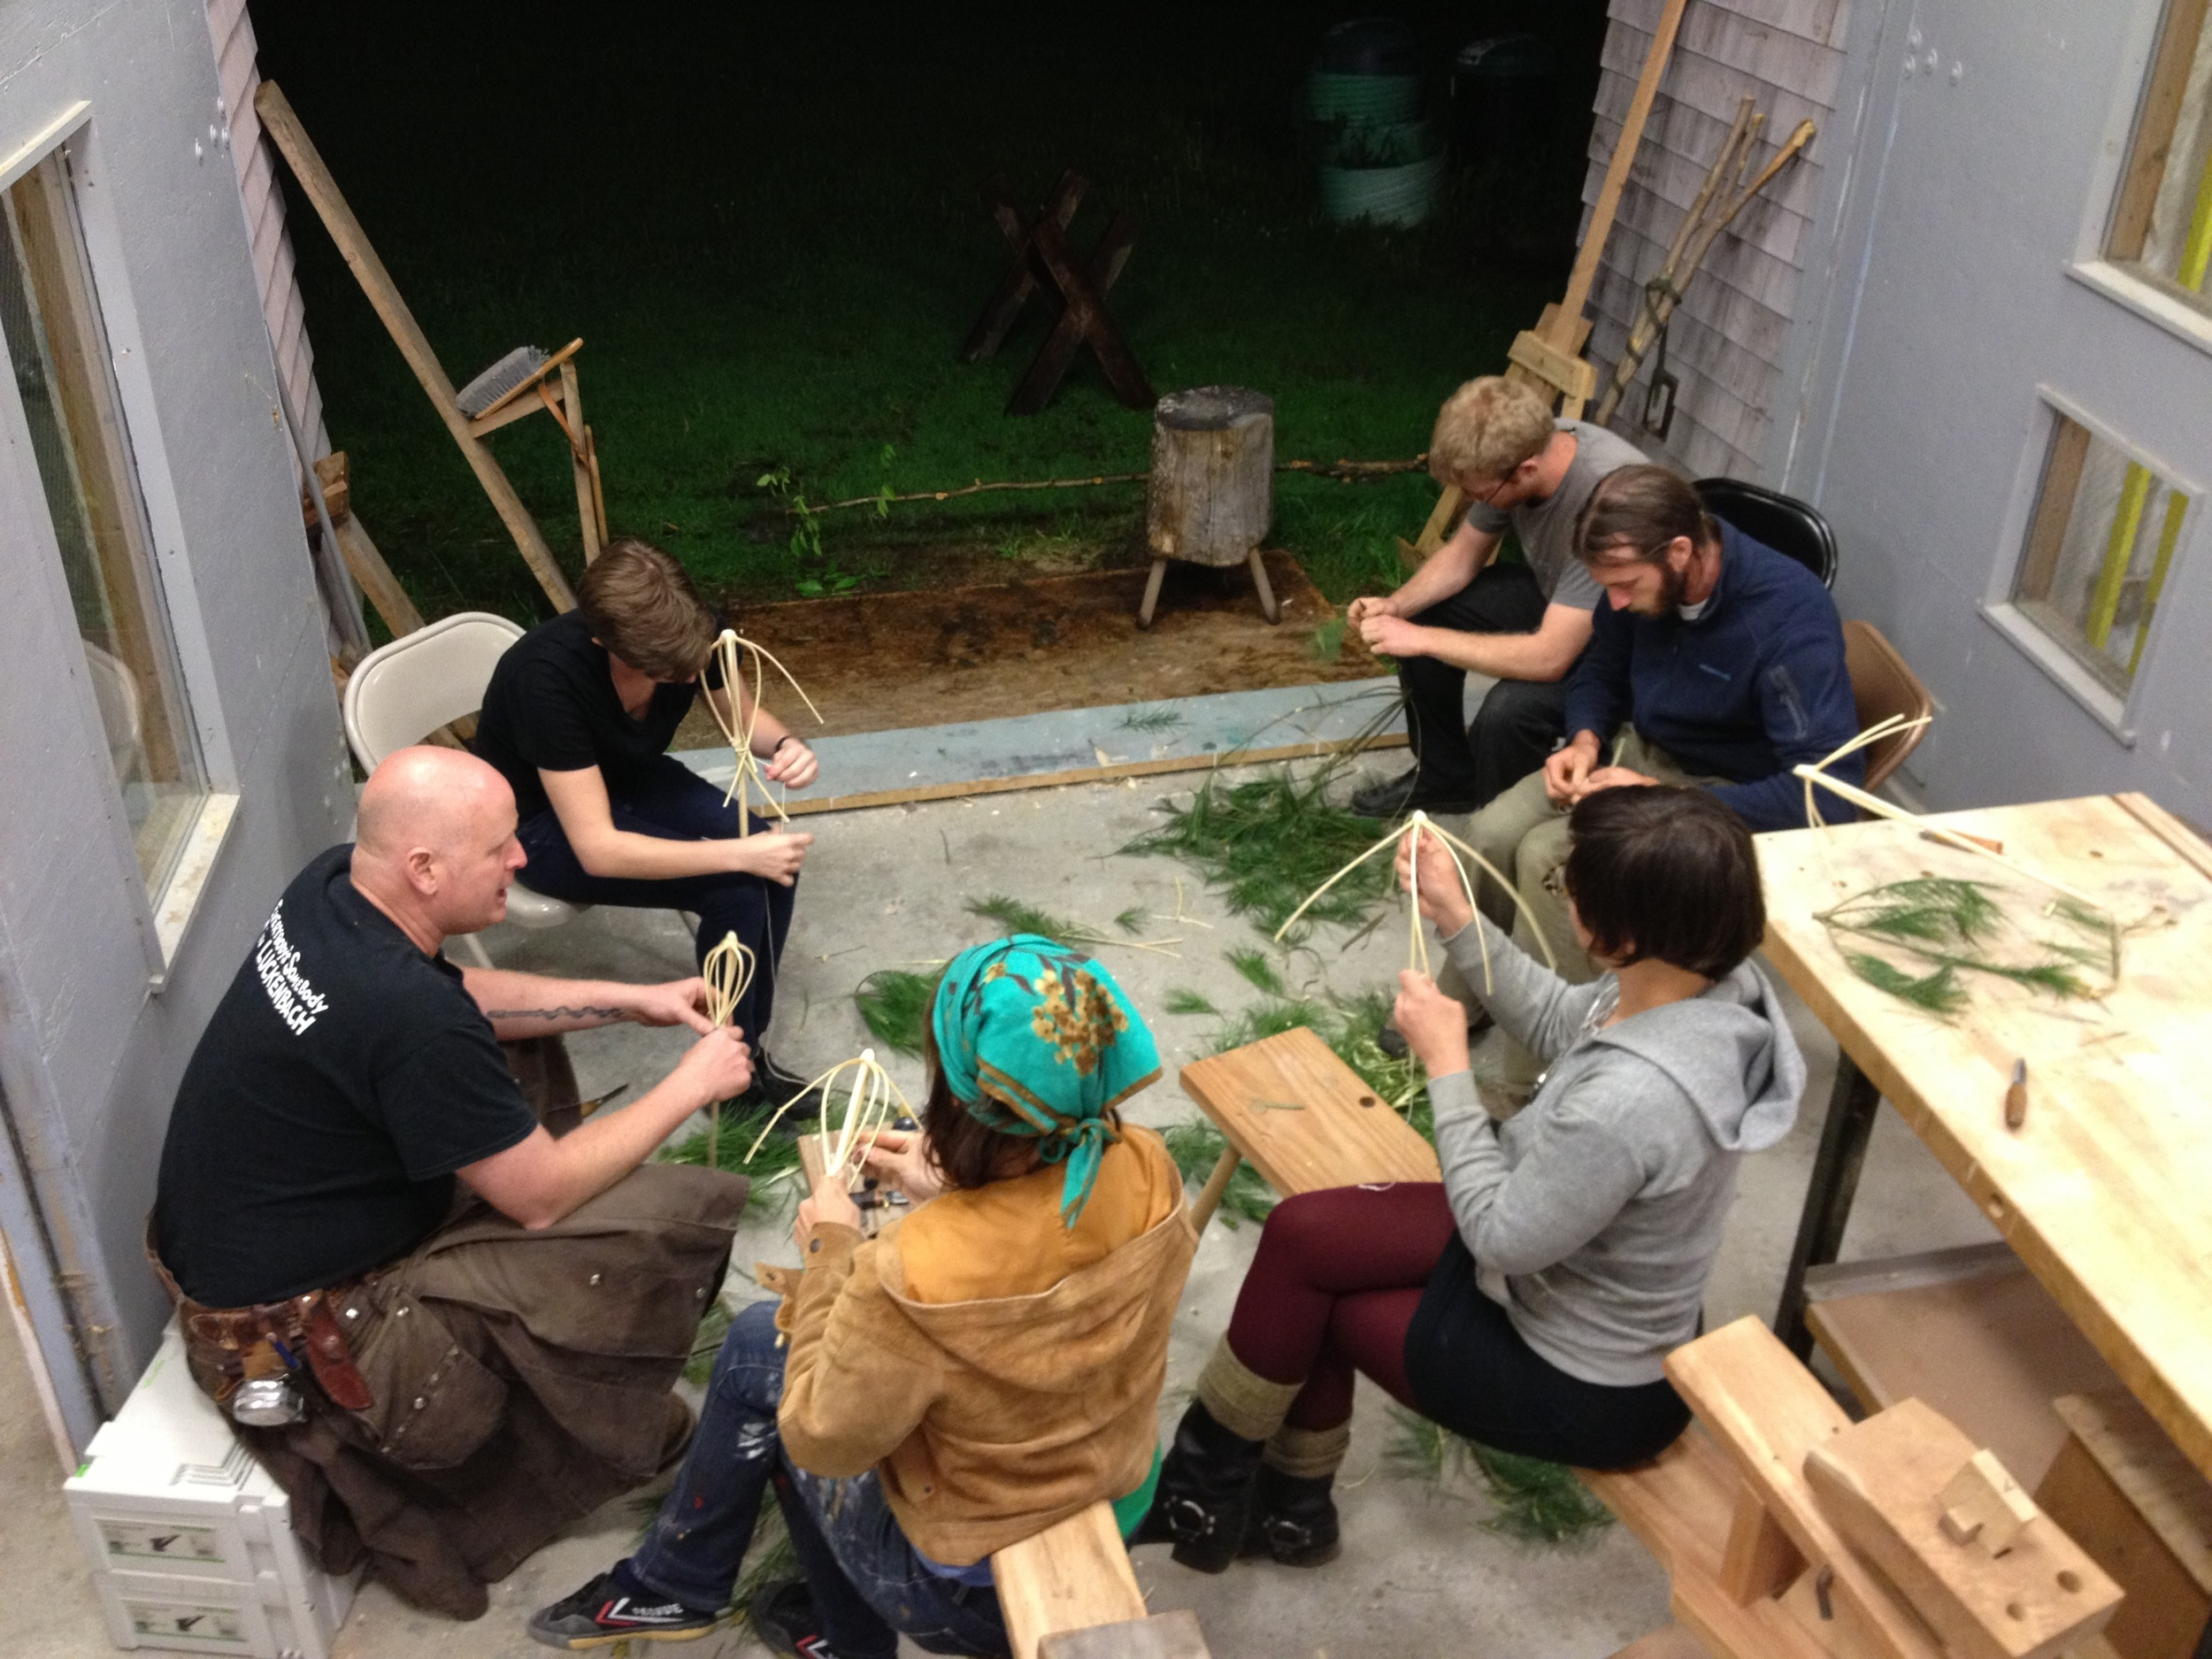 Making whisks out of spruce tops at Yestermorrow in Vermont the first night of class